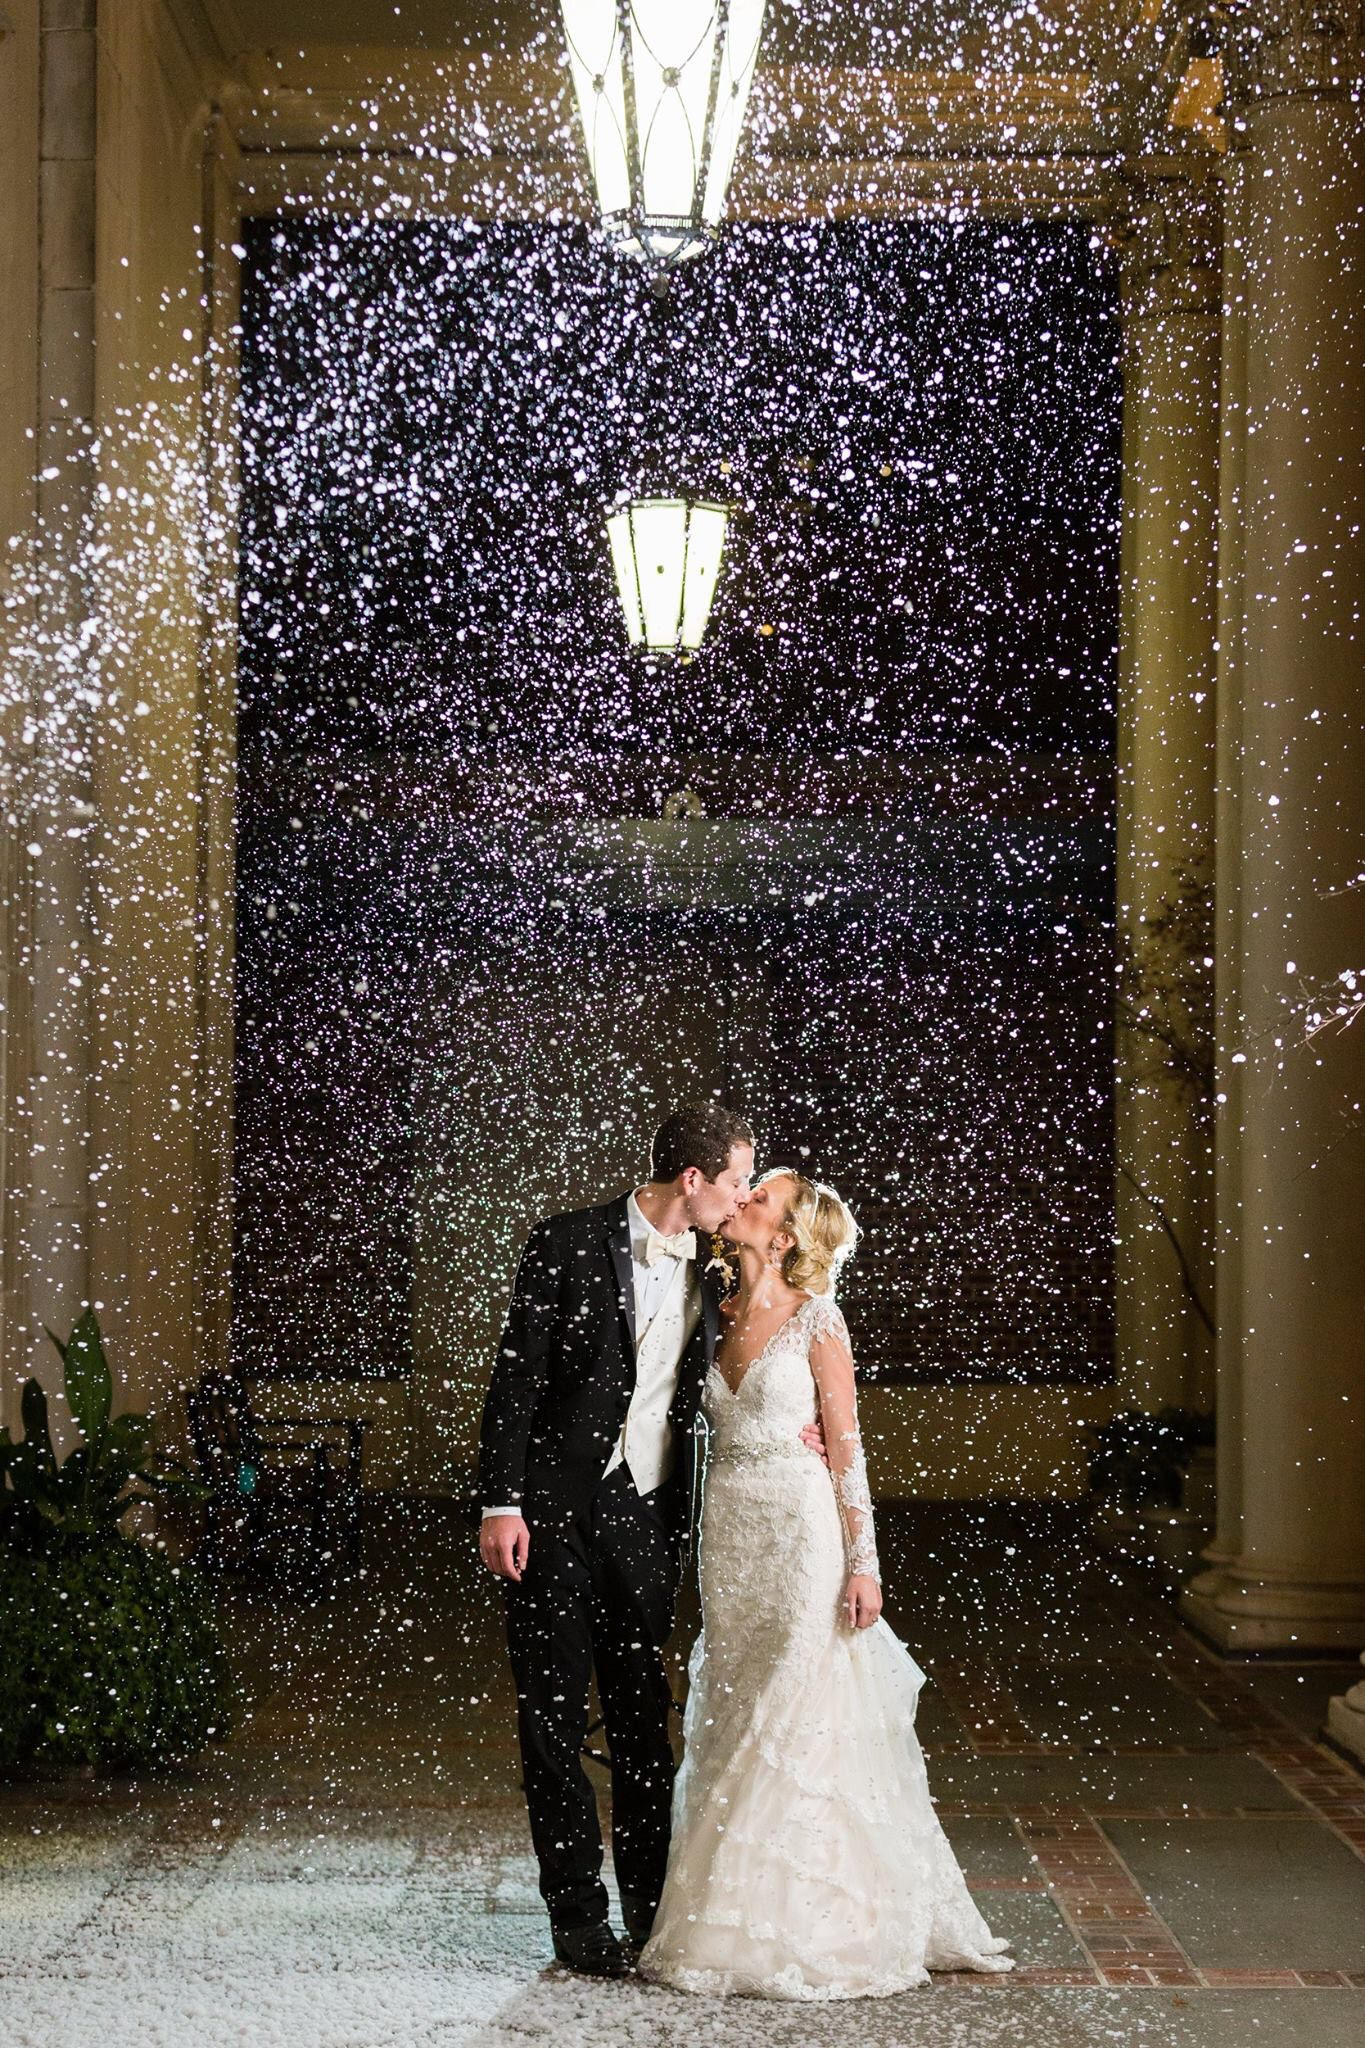 Snow machine for a winter wedding with a snow exit